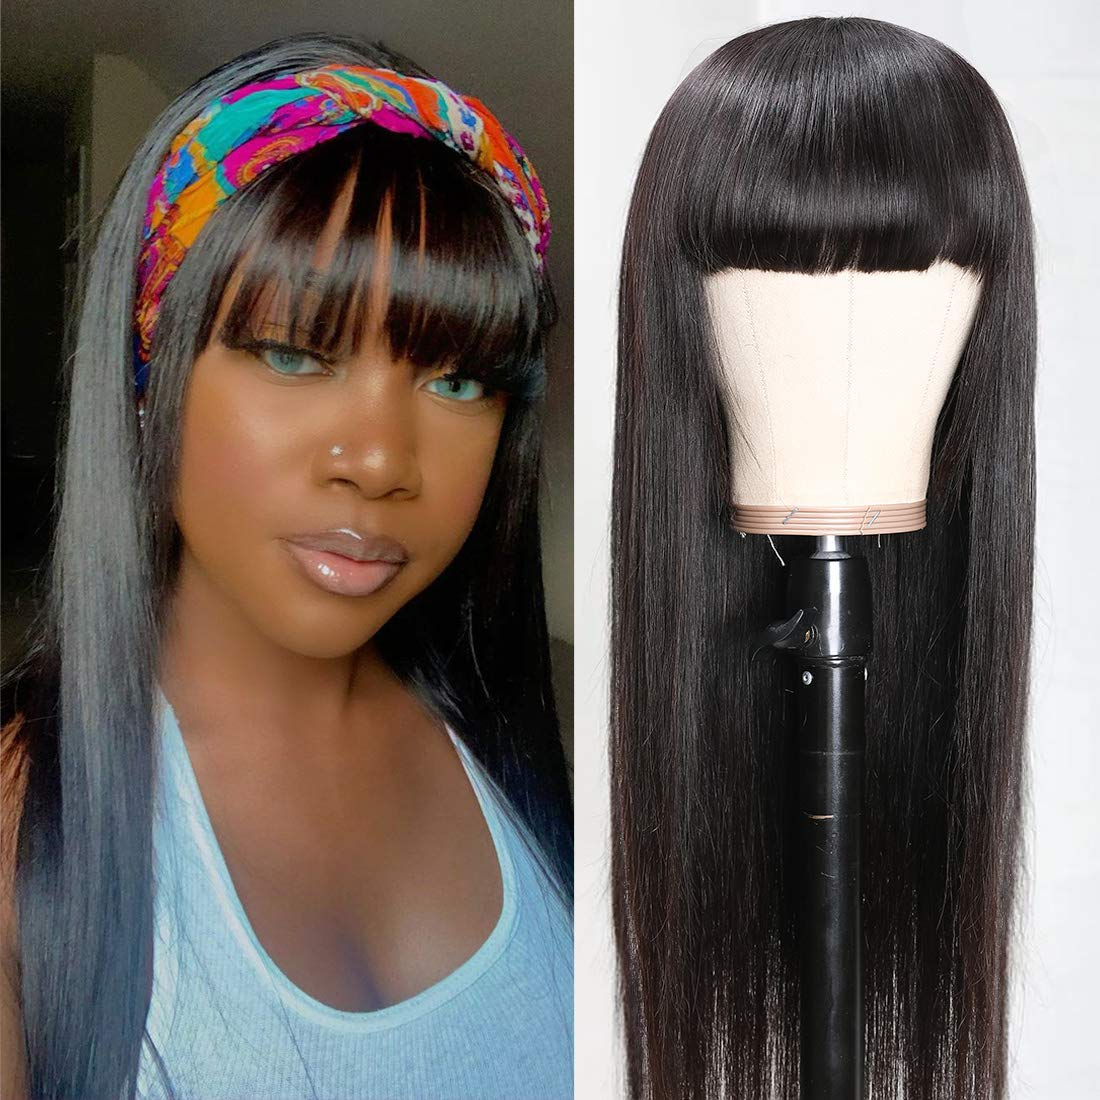 VSHOW Direct store Straight Human Hair Wigs 150% Bangs 18Iches 40% OFF Cheap Sale with Density